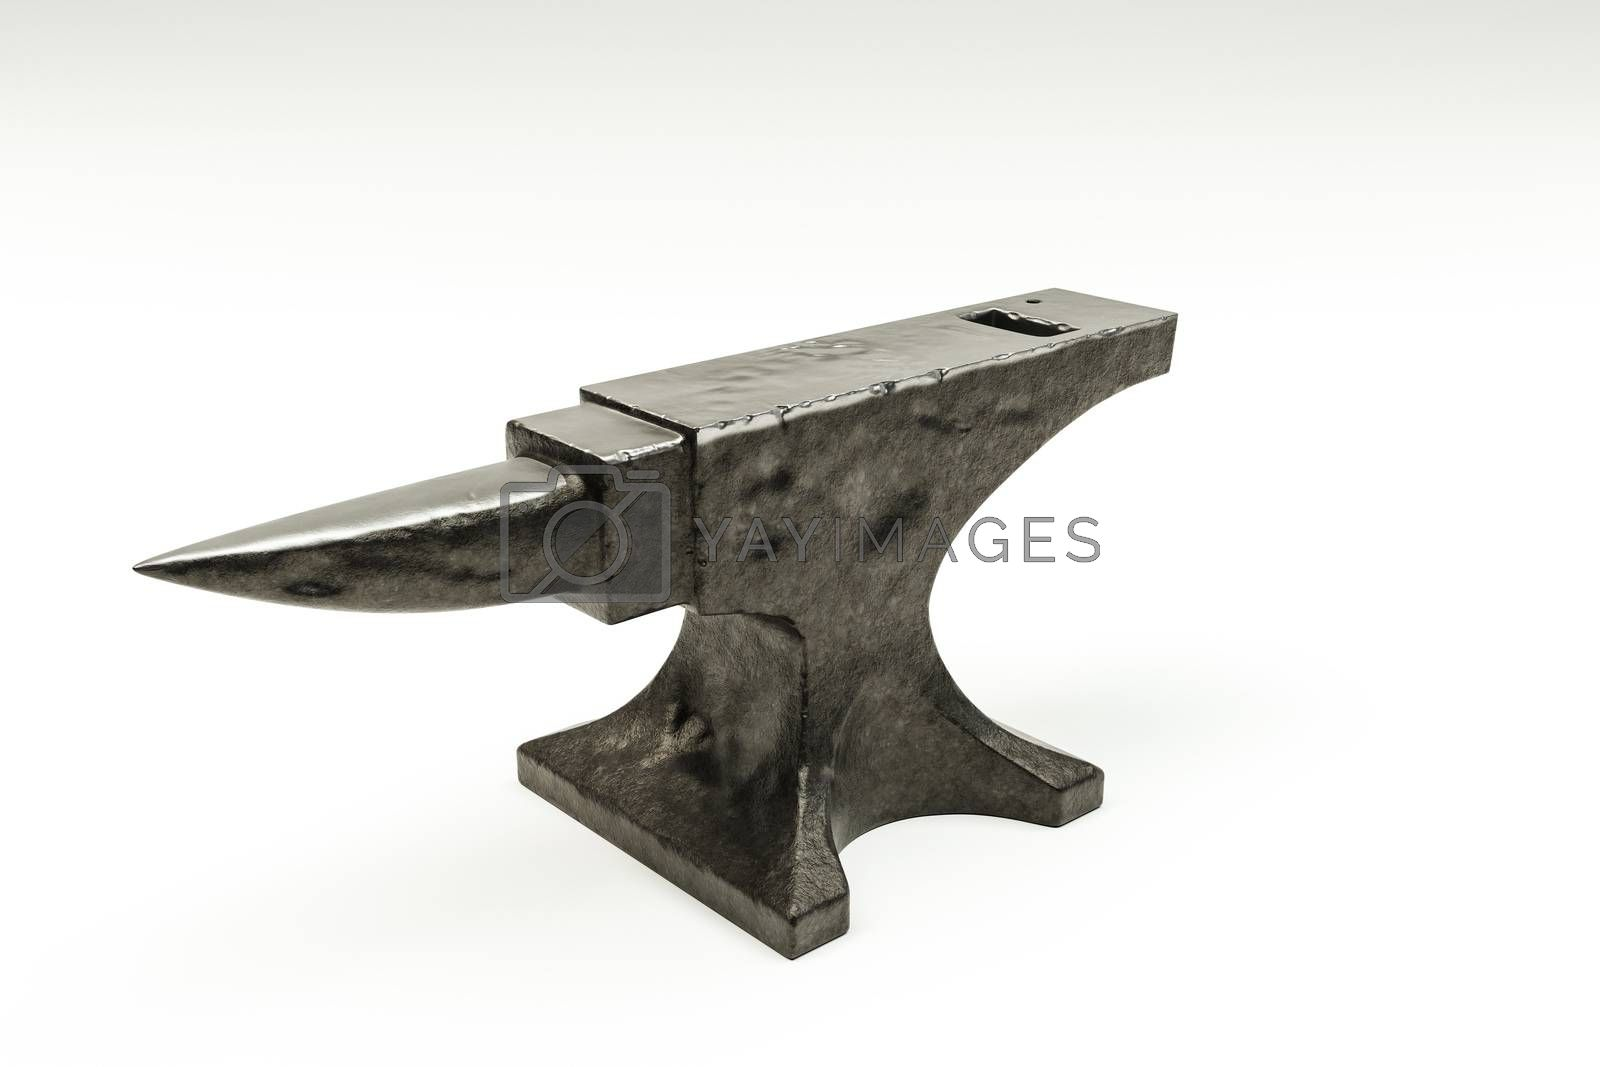 anvil isolated on white background 3d illustration